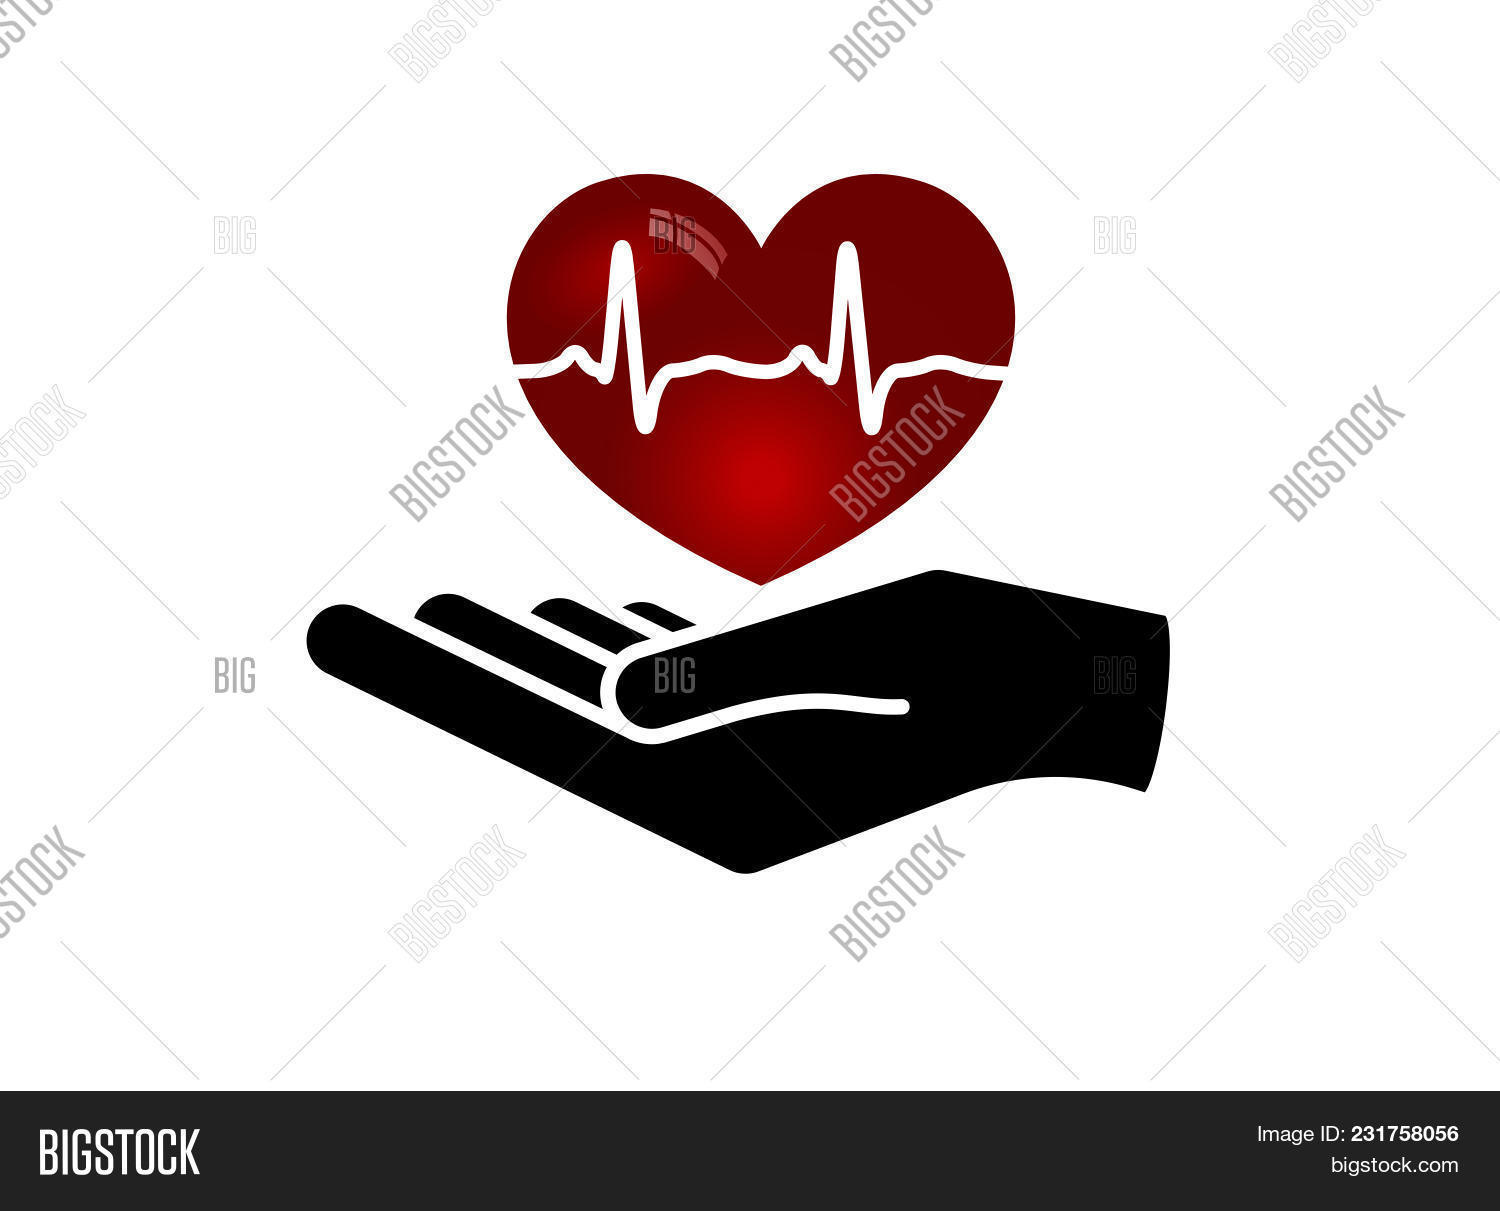 Heart Hand Giving Vector Photo Free Trial Bigstock